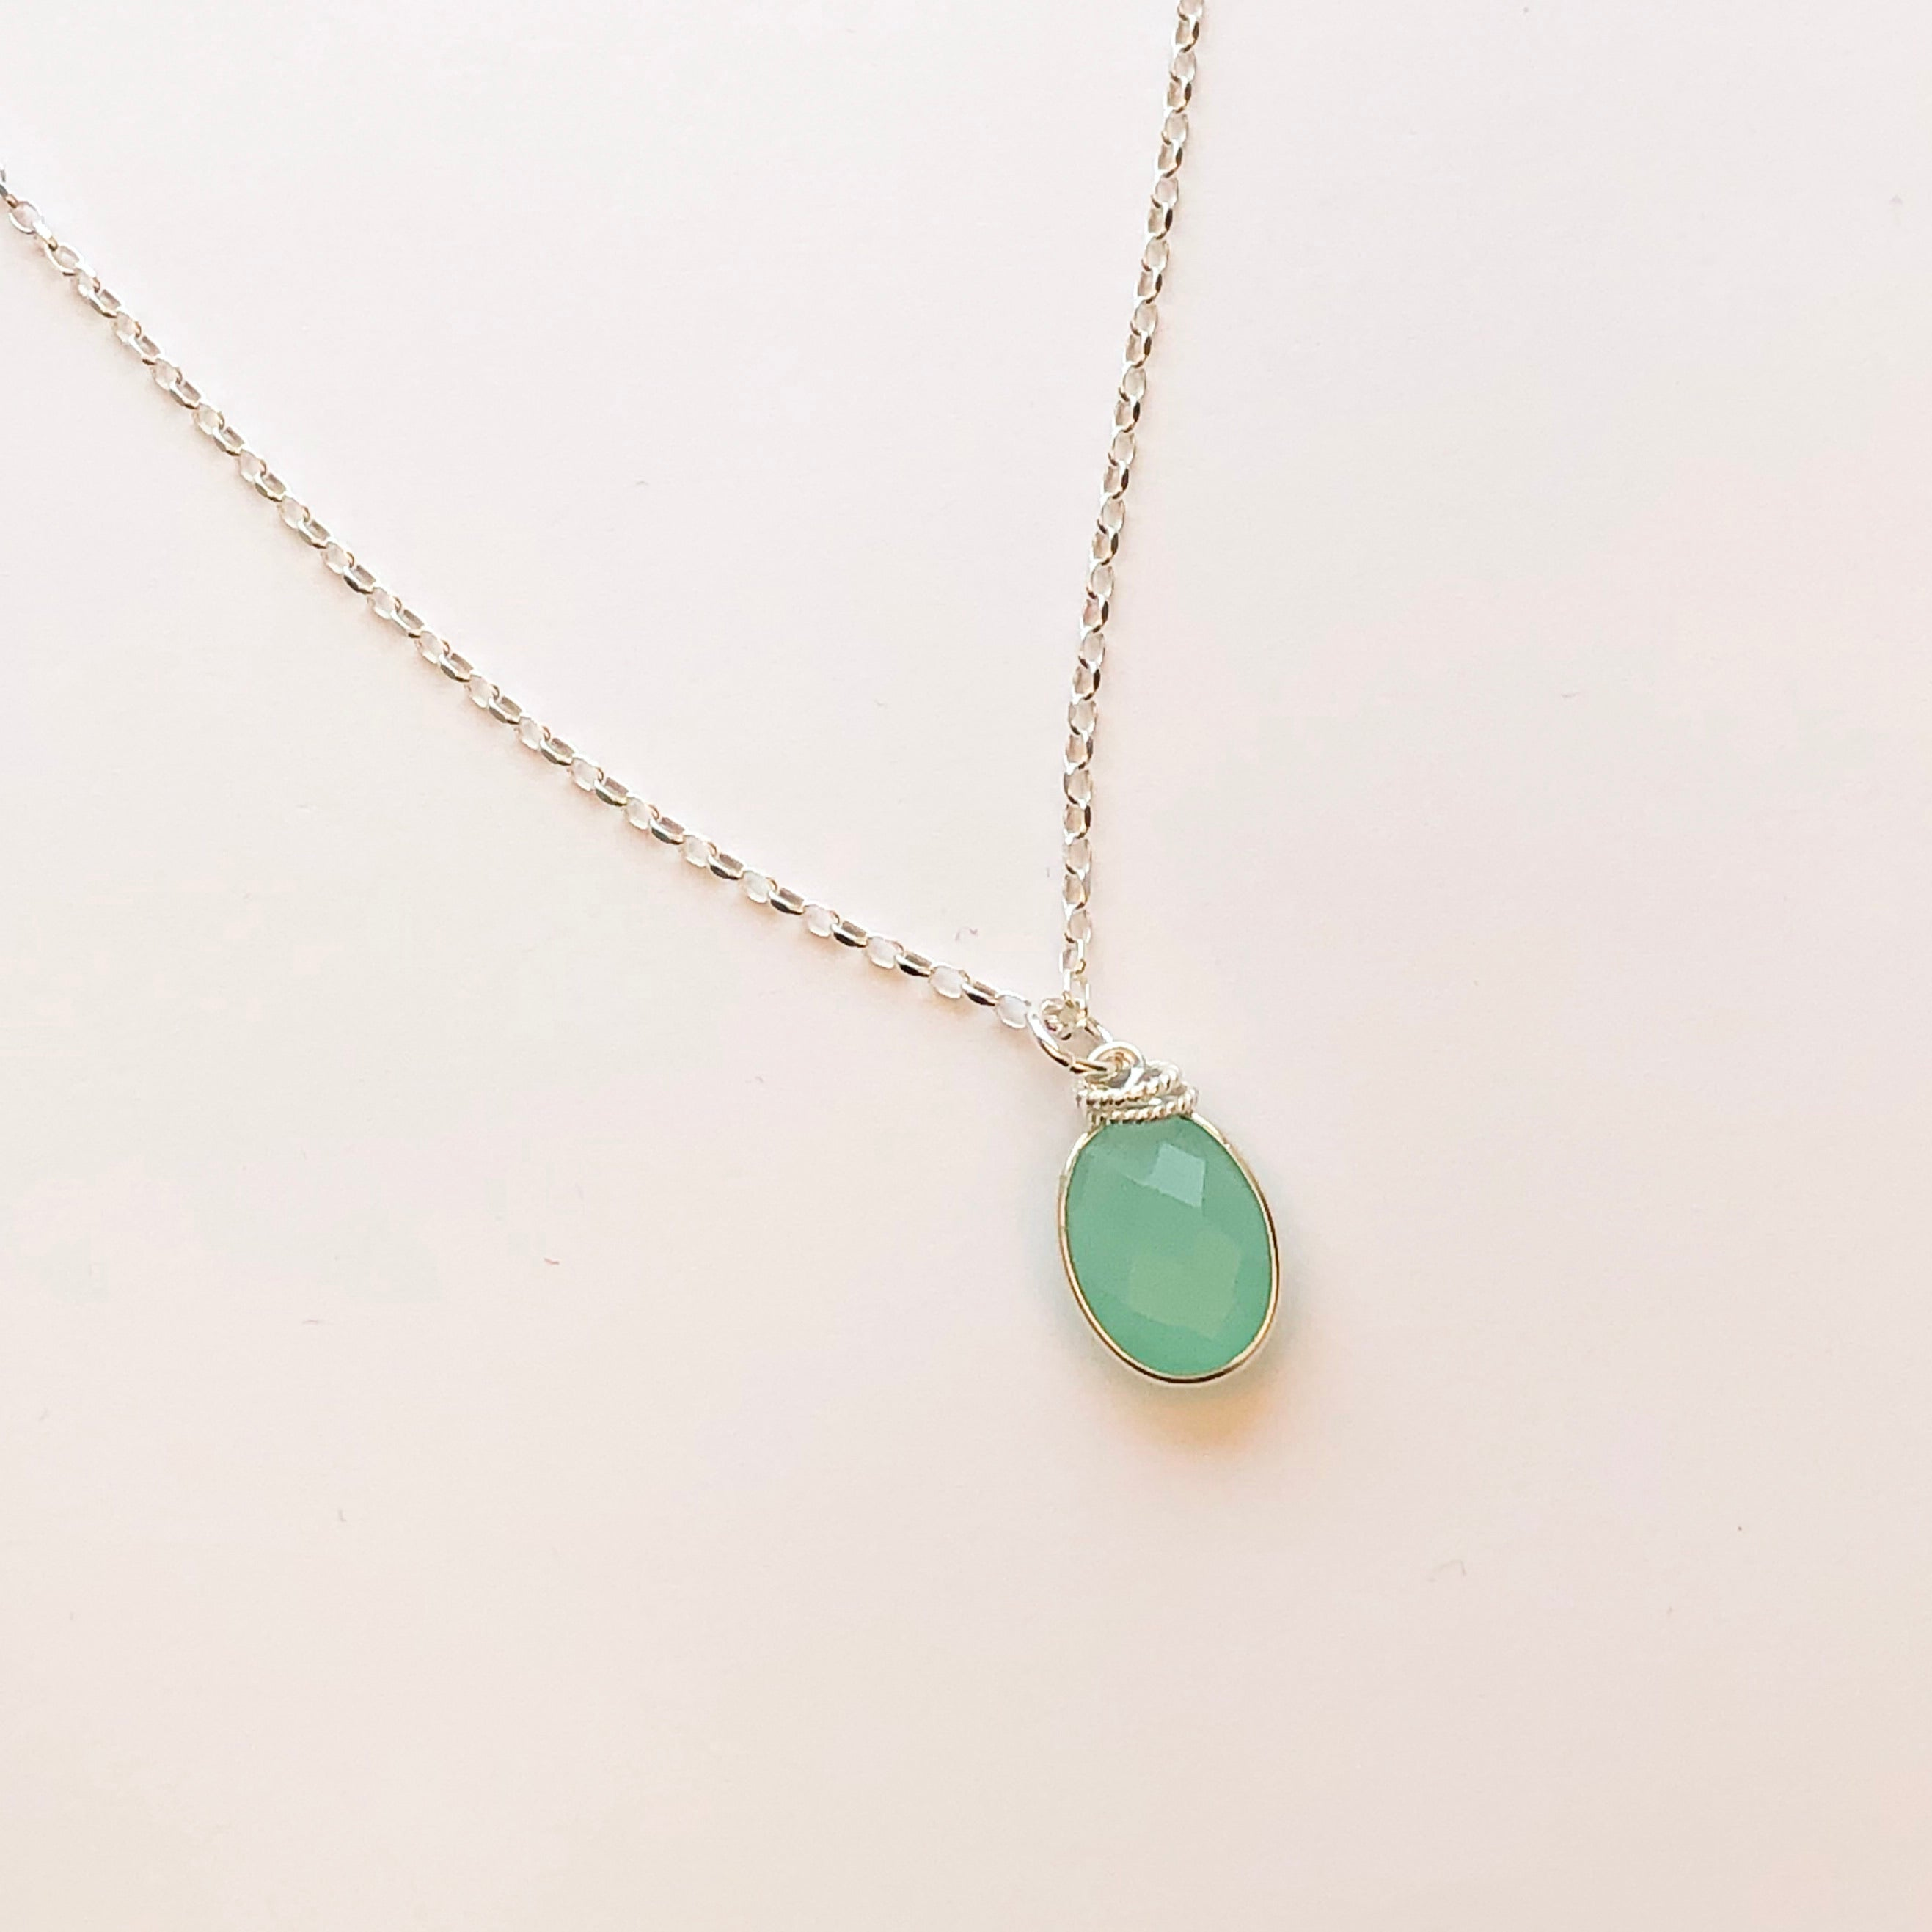 OLIVE NECKLACE - Elizabeth Burry Design